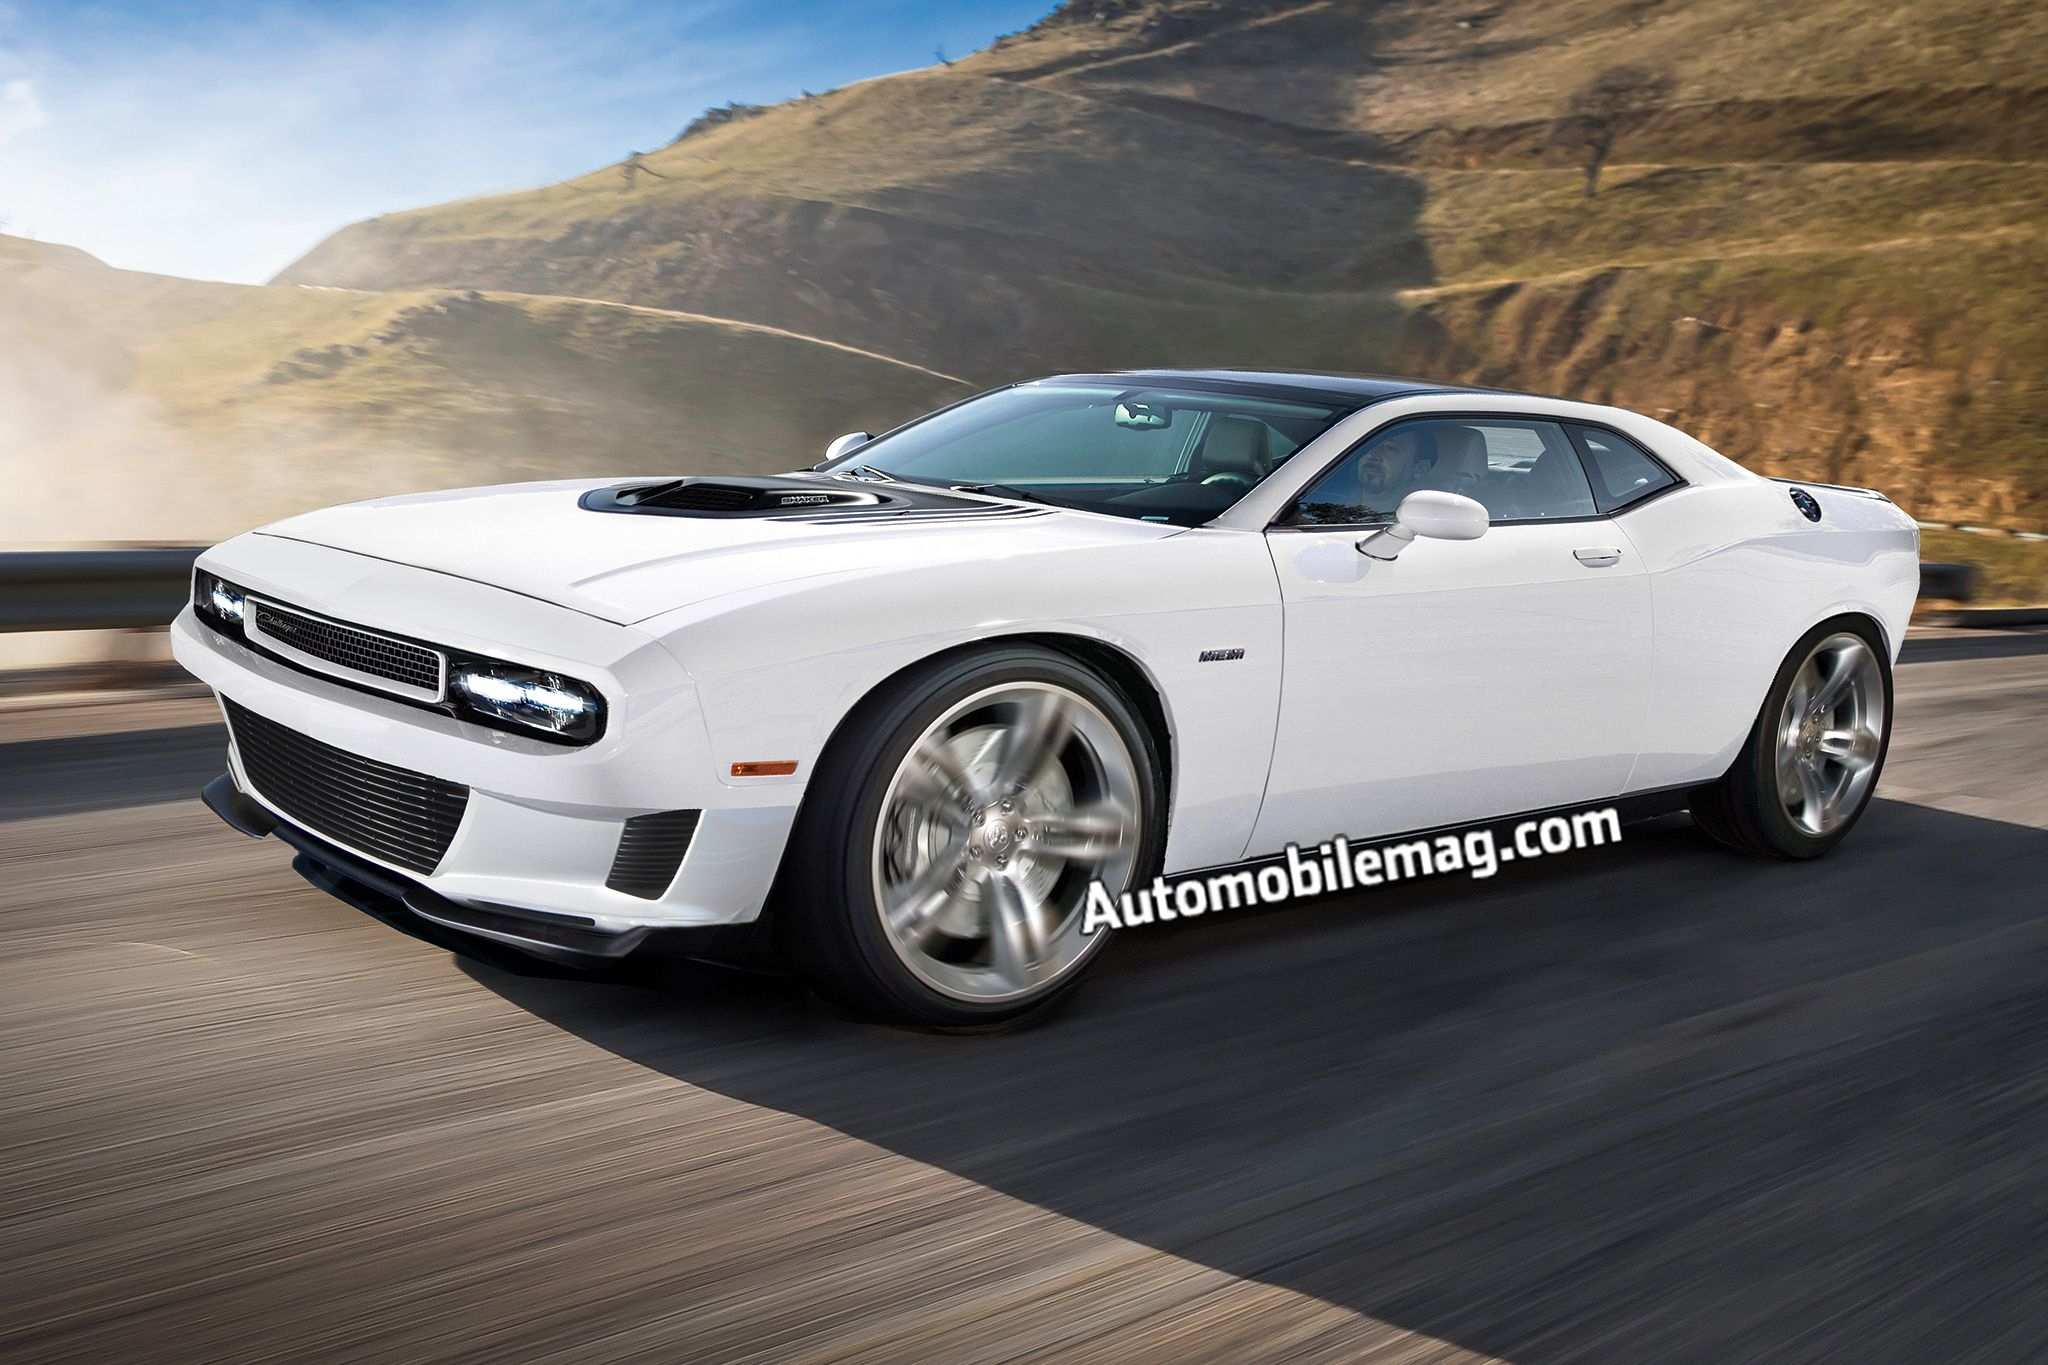 48 Great Dodge Challenger 2020 Rumors for Dodge Challenger 2020